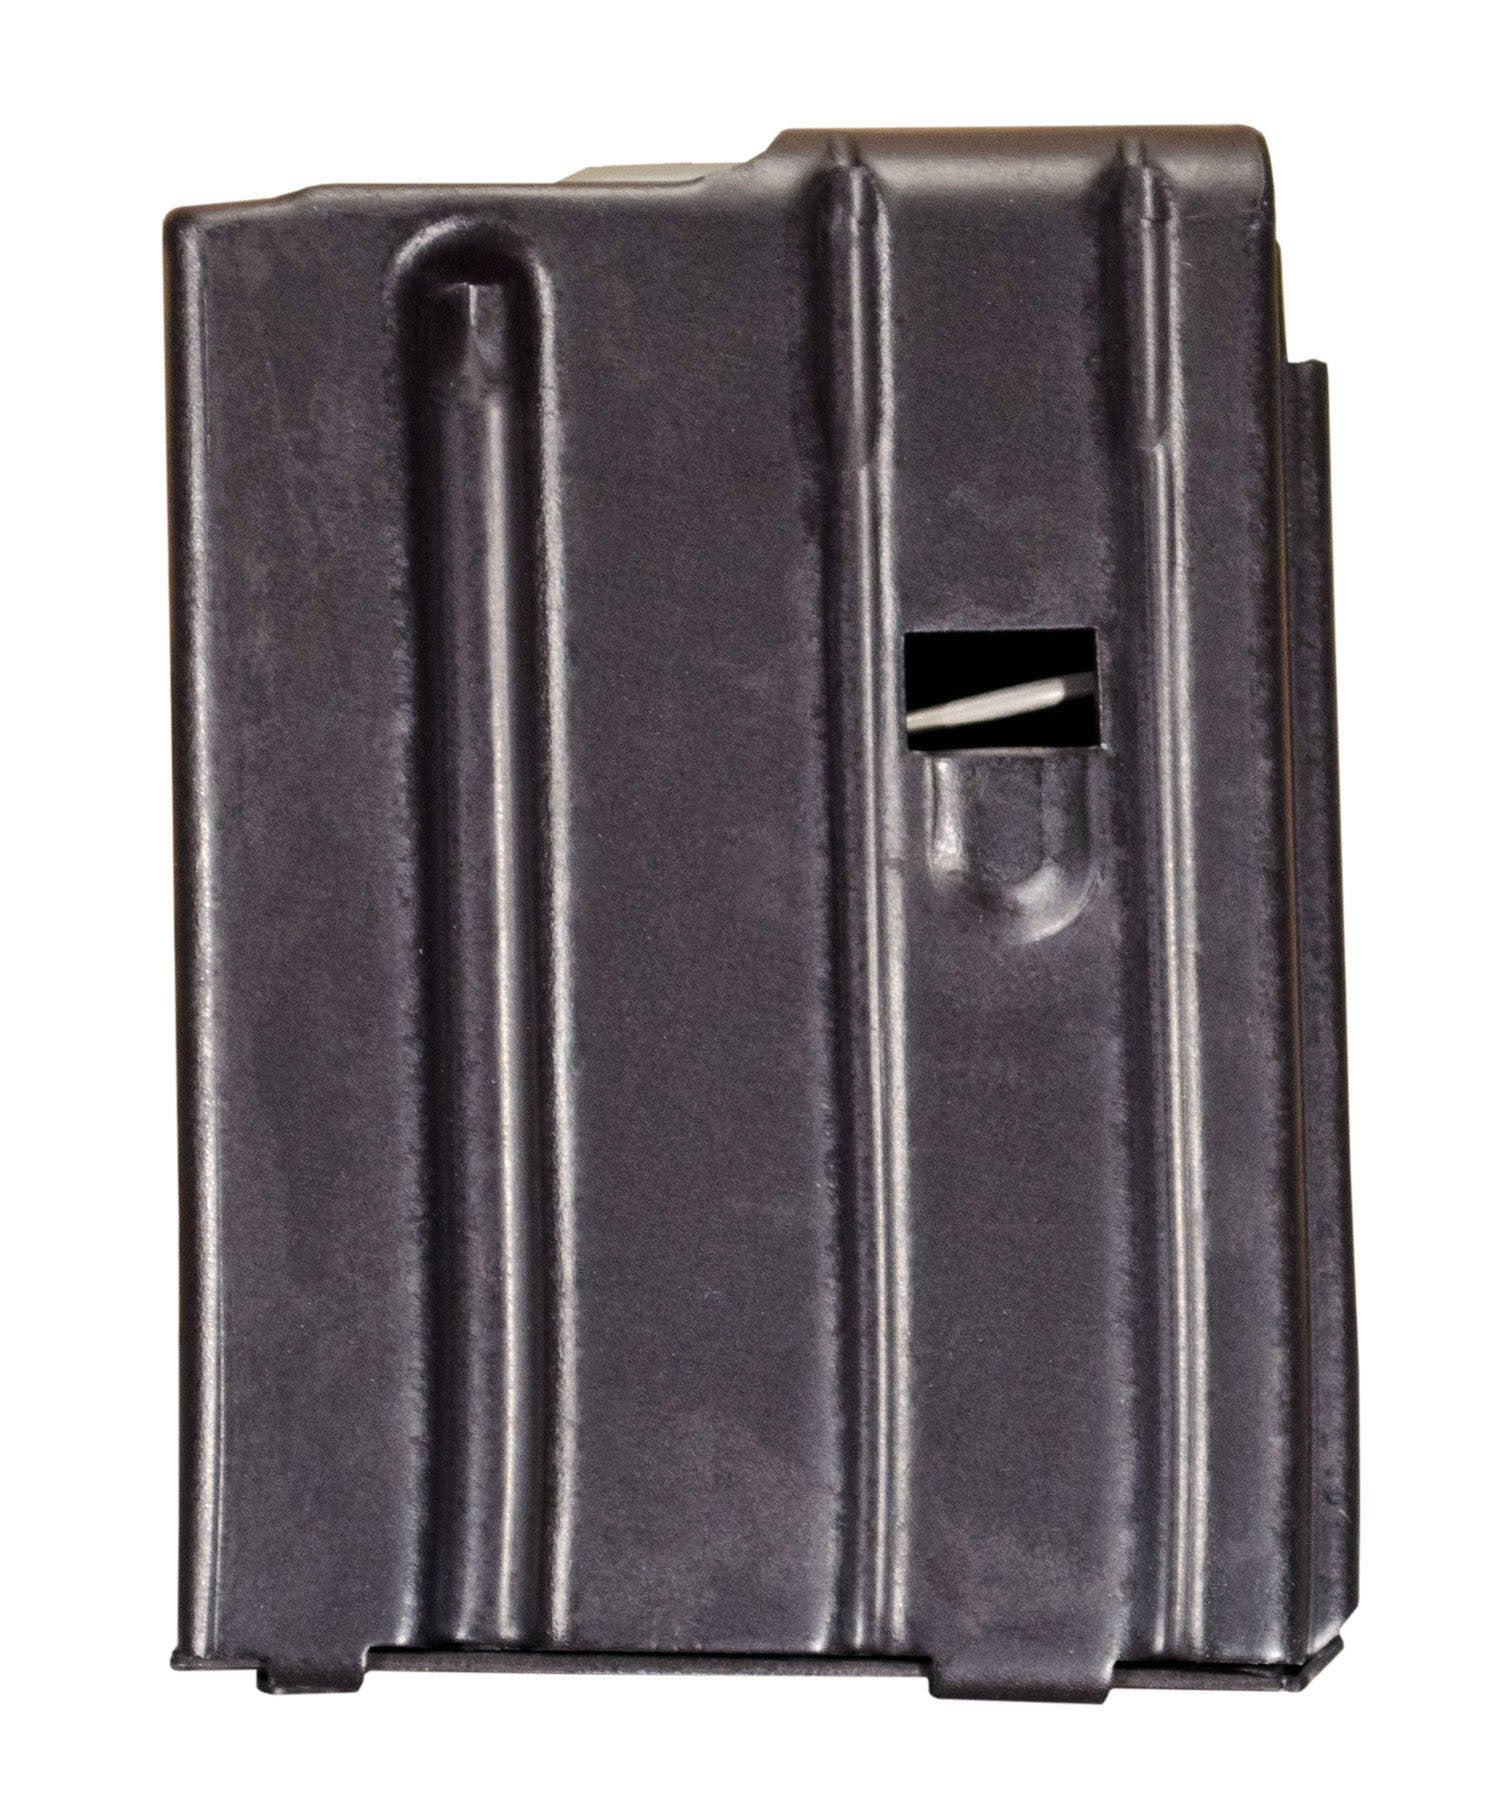 windham weaponry 10 round magazine 5 56 223